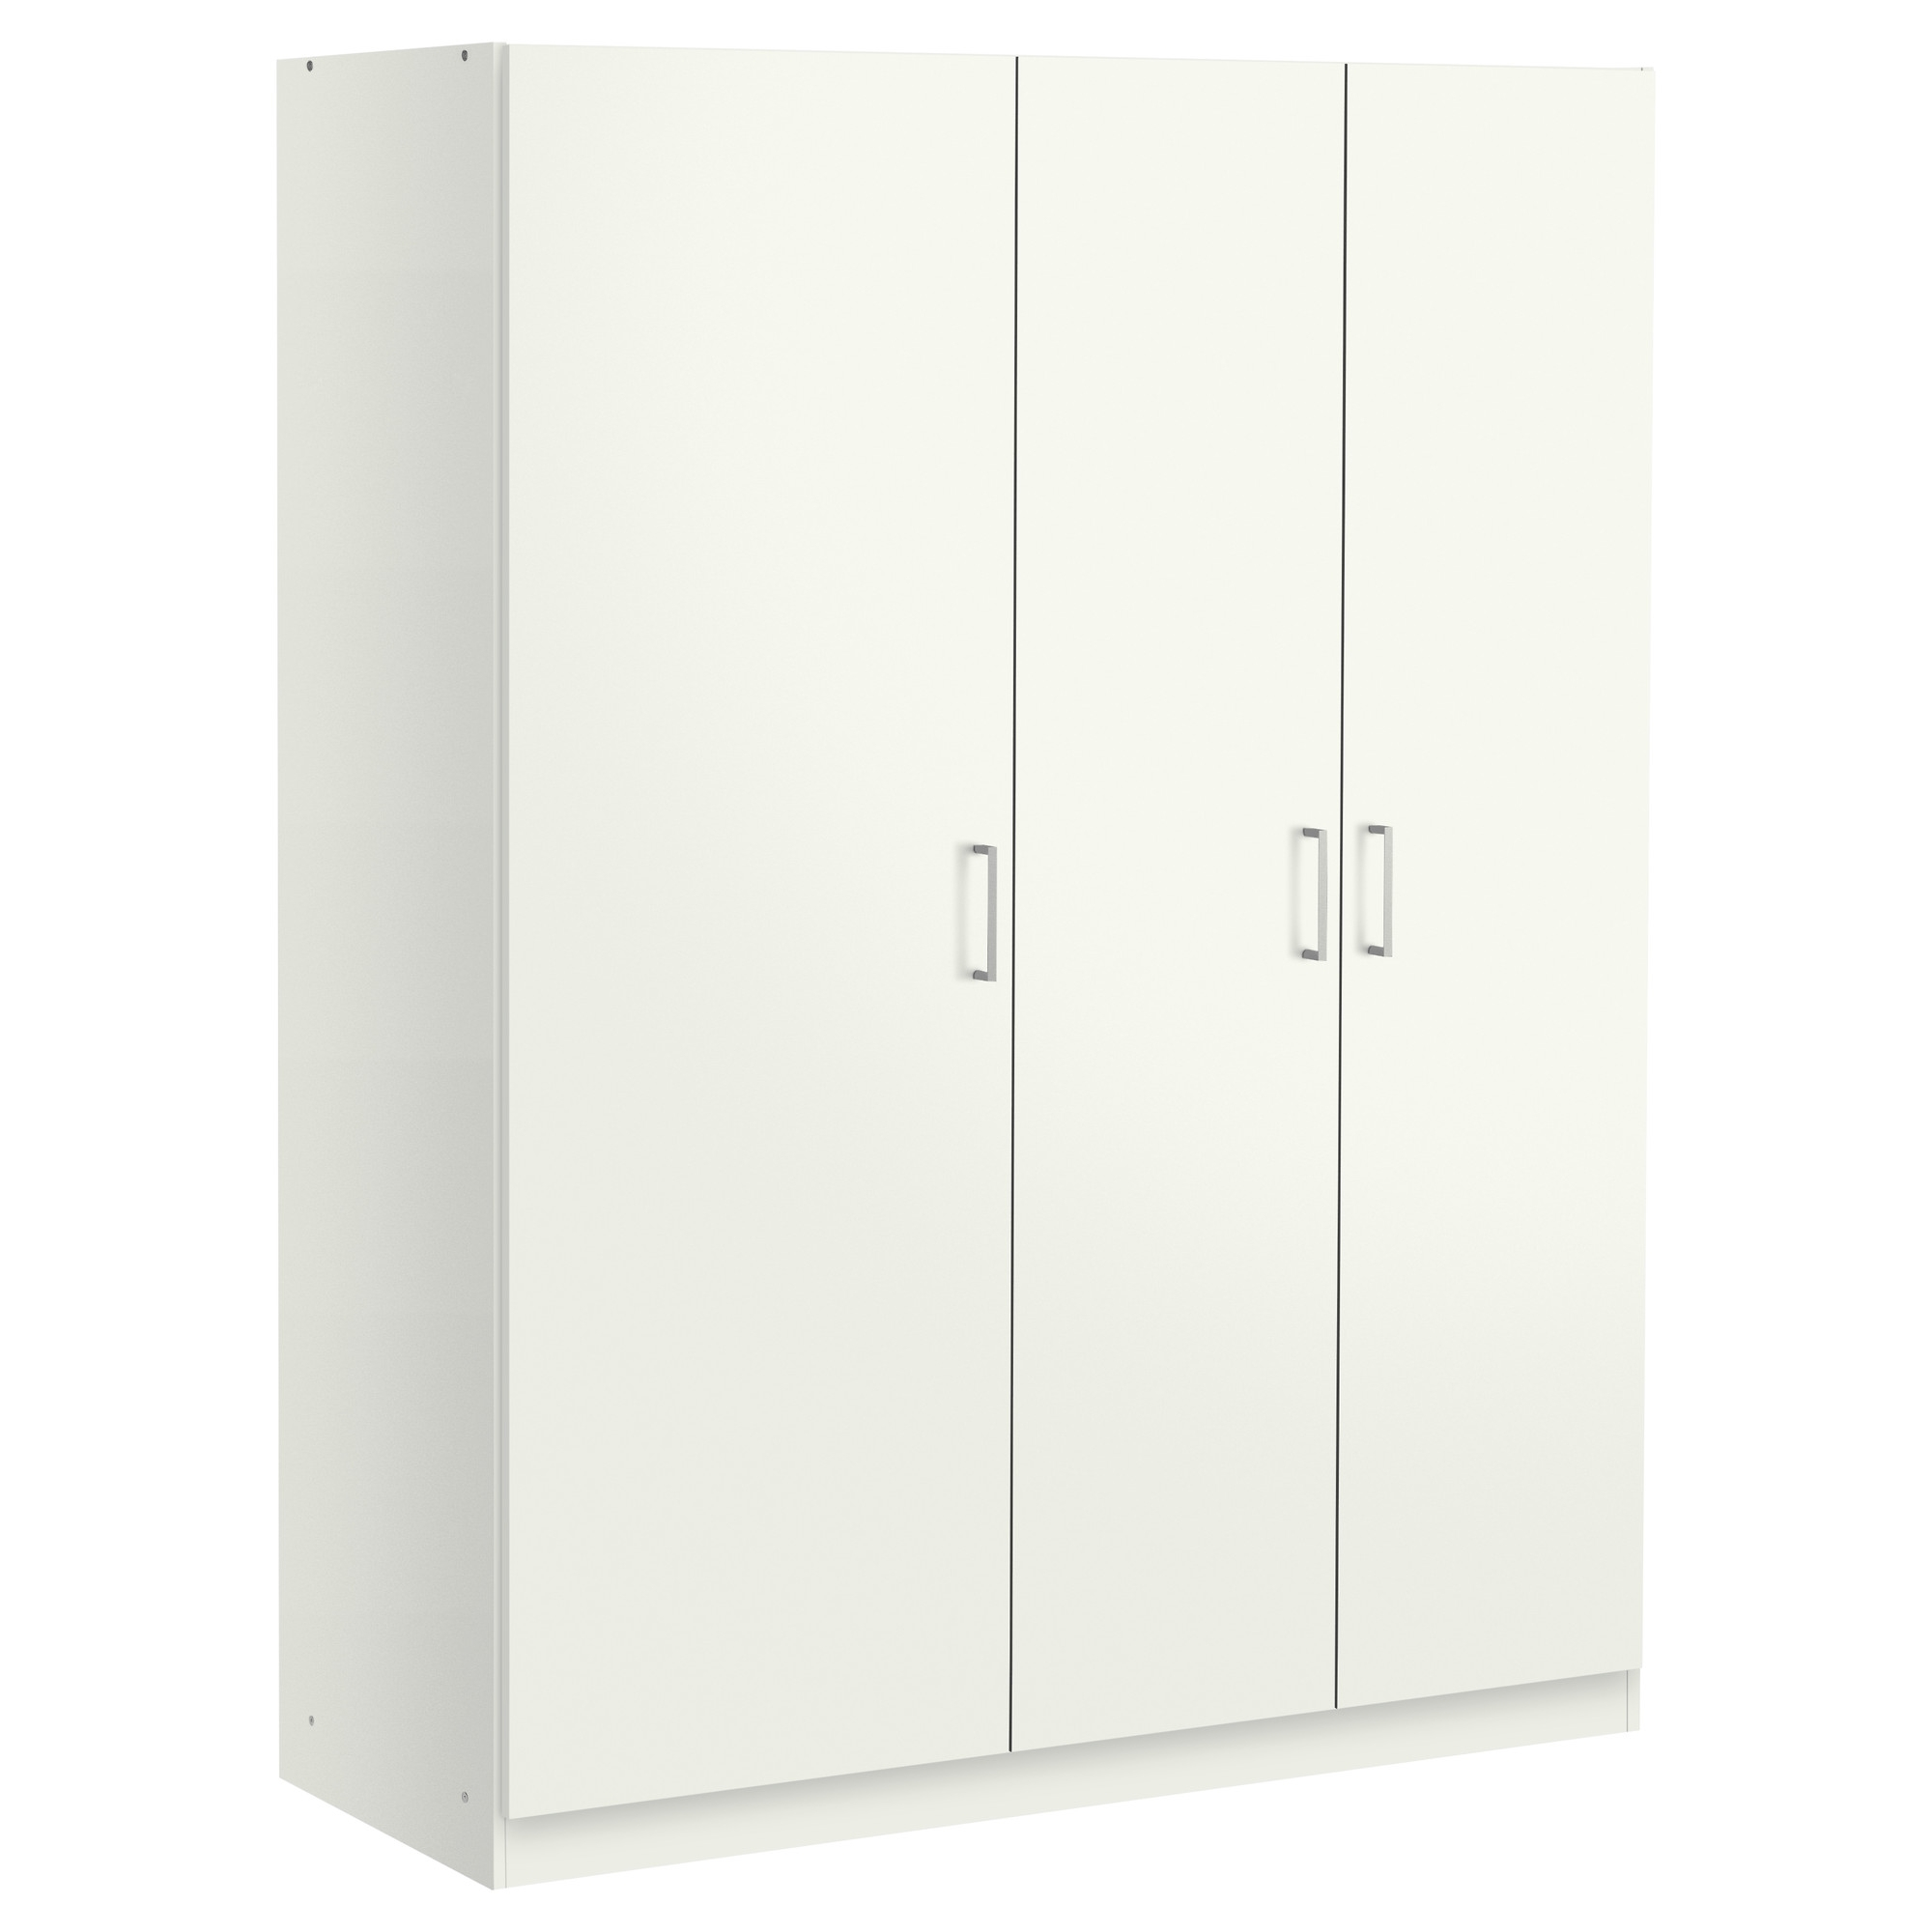 Cheap Fitted Wardrobes Ikea Tags : Dazzling Ikea Wardrobes Simple With Well Known Wardrobes Cheap (View 3 of 15)